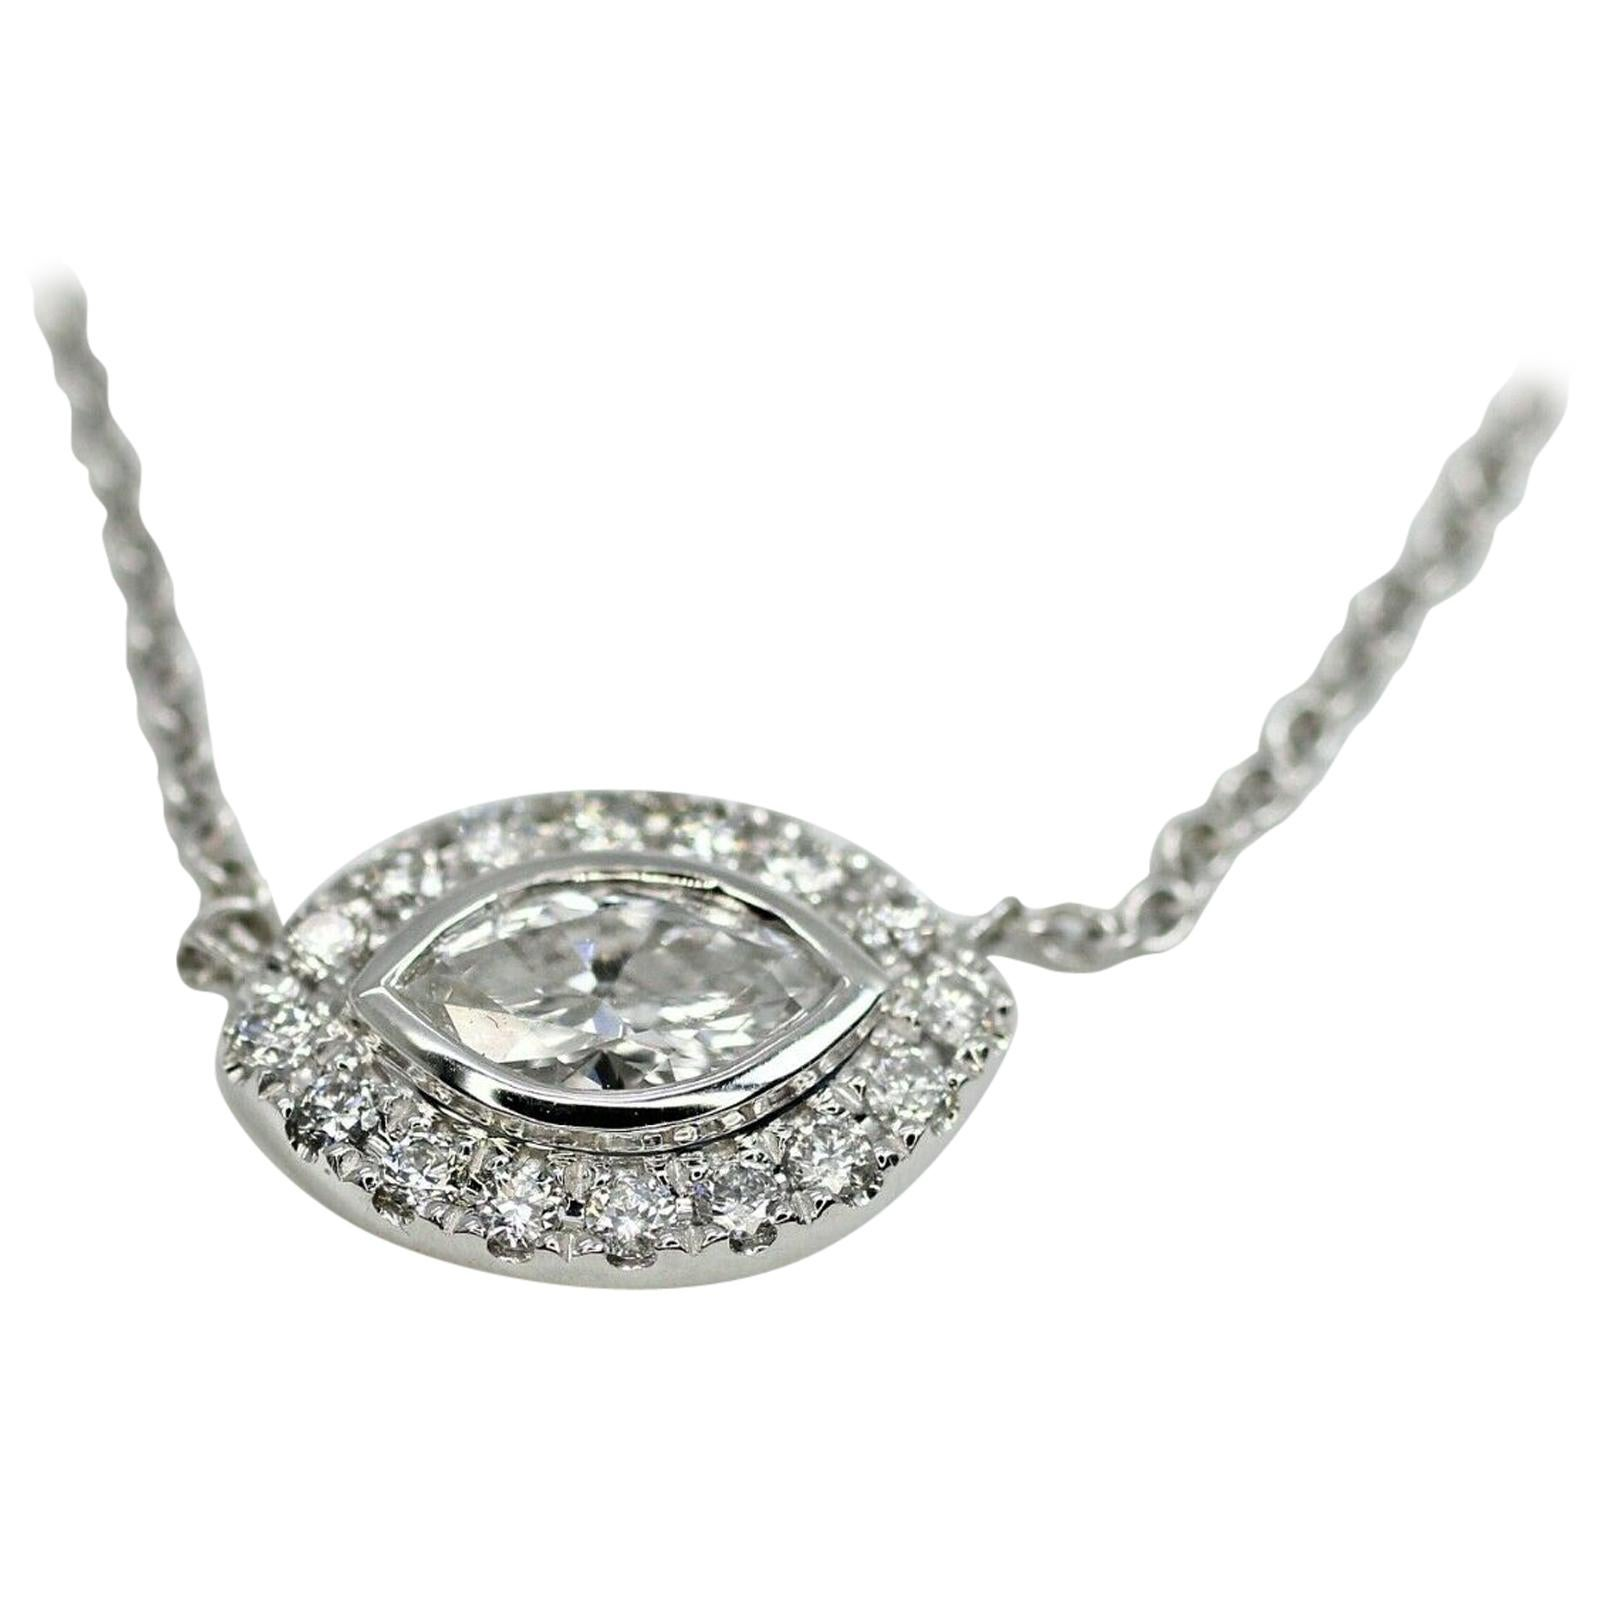 14 Karat White Gold Necklace with a Marquise and Halo